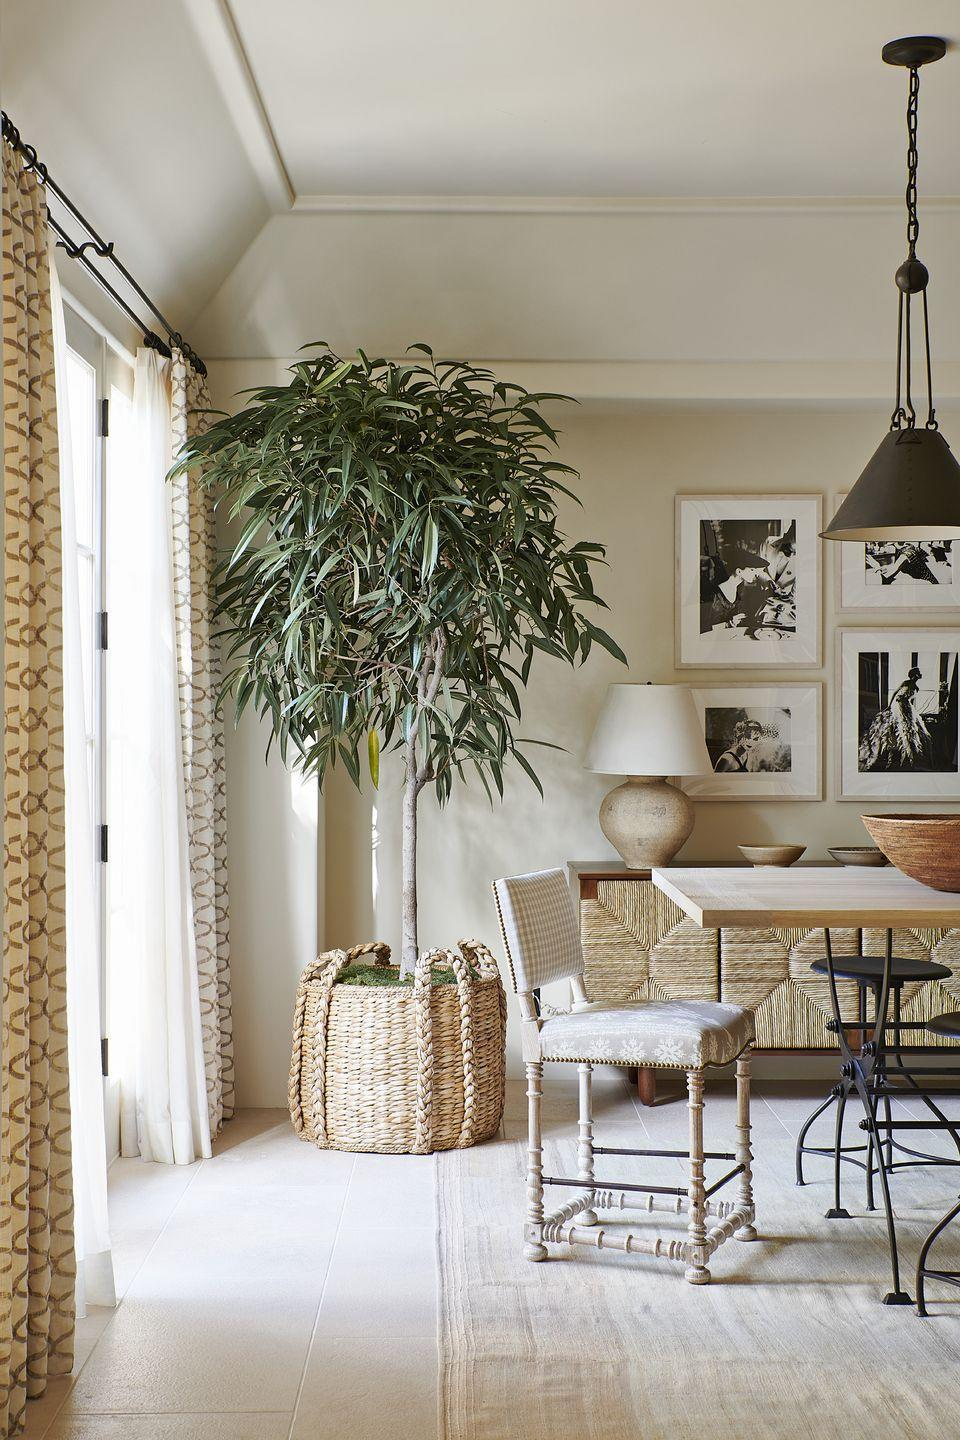 "<p>This monochromatic space feels layered and luxurious thanks to natural fibers, artisan-made goods, and the genius eye of Mark D. Sikes. This space is ideal for fashion designer Karen Kane to find peace of mind and enjoy the natural beauty of her sunny surroundings at <a href=""https://www.veranda.com/decorating-ideas/house-tours/a34244492/mark-sikes-california-house-tour-2020/"" rel=""nofollow noopener"" target=""_blank"" data-ylk=""slk:her Southern California abode"" class=""link rapid-noclick-resp"">her Southern California abode</a>.</p>"